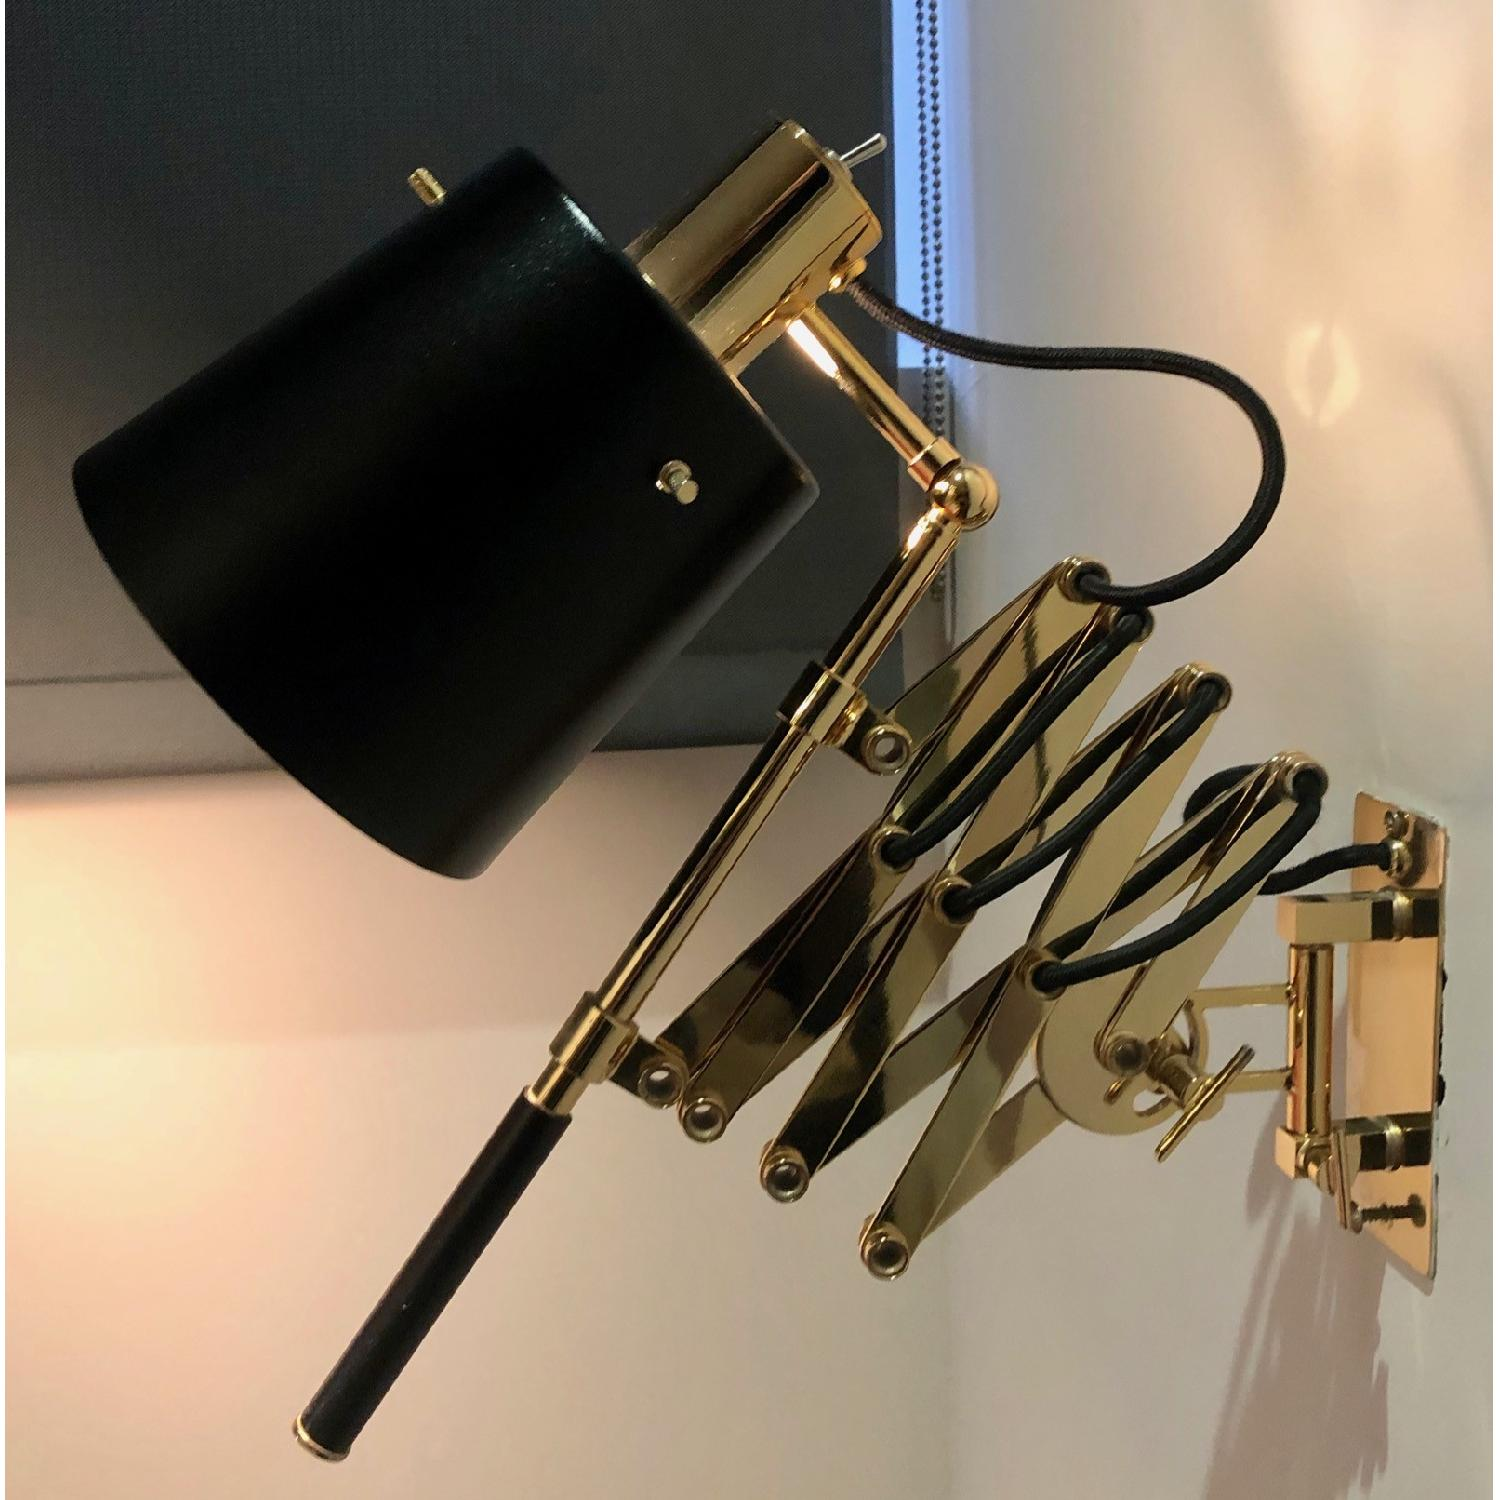 Delighttfull Pastorius Wall Lamps in Gold/Black-1